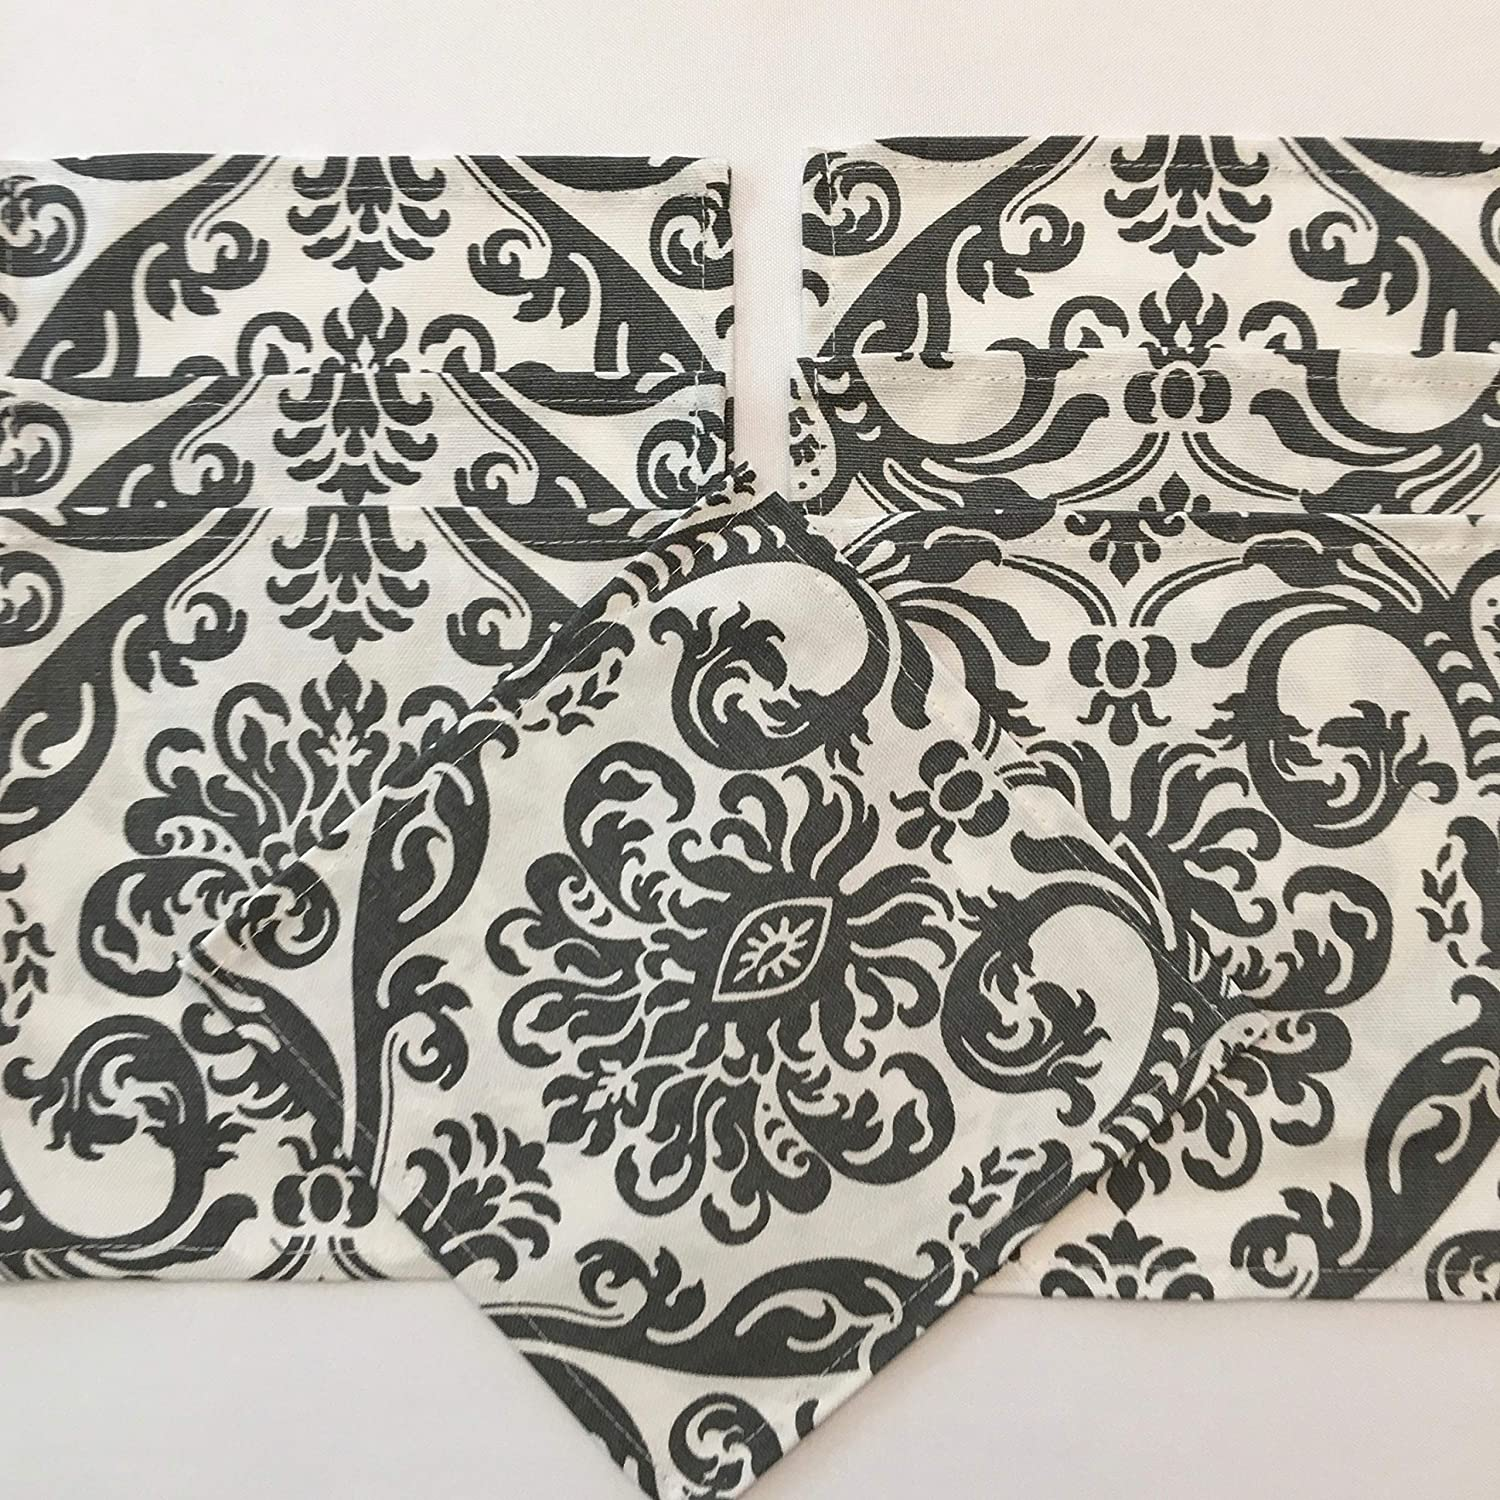 Set of 4 Cotton Gray and White Regal Design Napkins 11.5 By 11.5 Inches